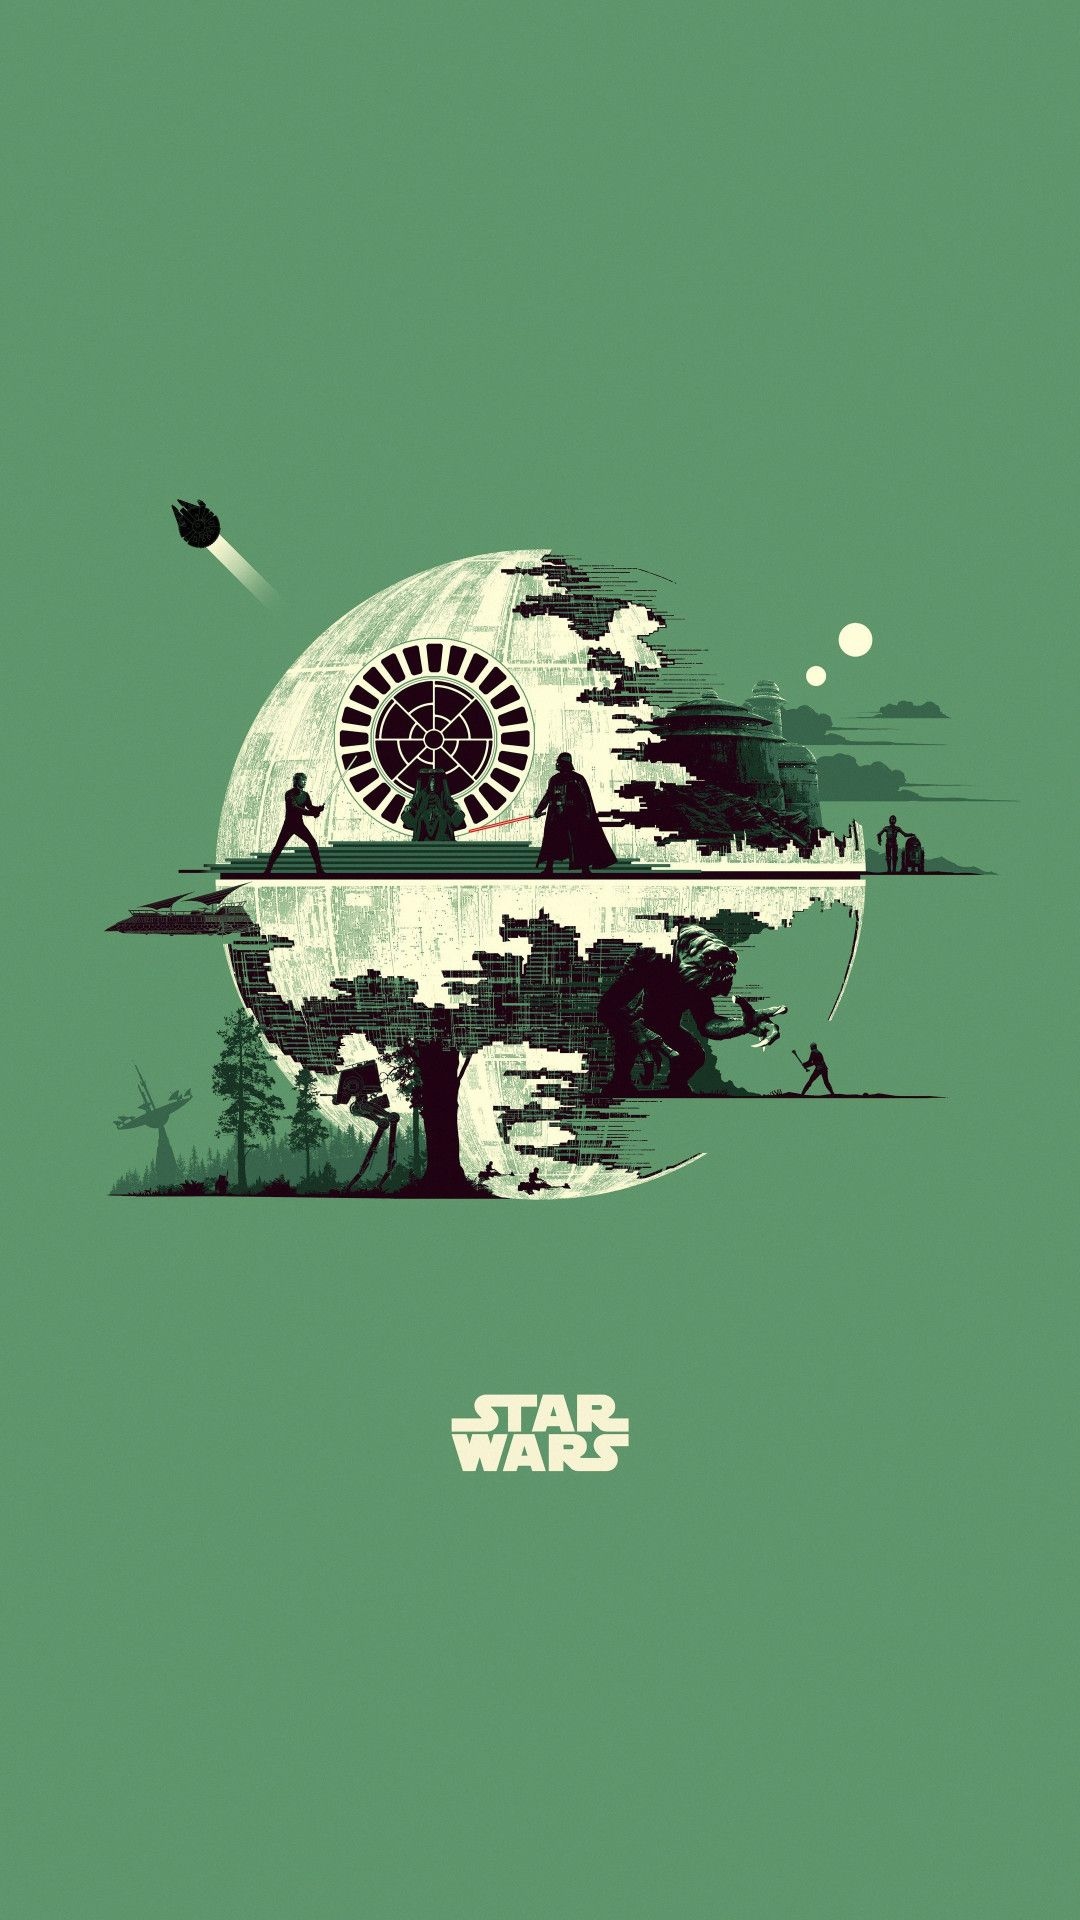 Star Wars Minimalism Artwork 5k Mobile Wallpaper Iphone Android Samsung Pixel Xiaomi In 2020 Star Wars Background Star Wars Wallpaper Star Wars Images